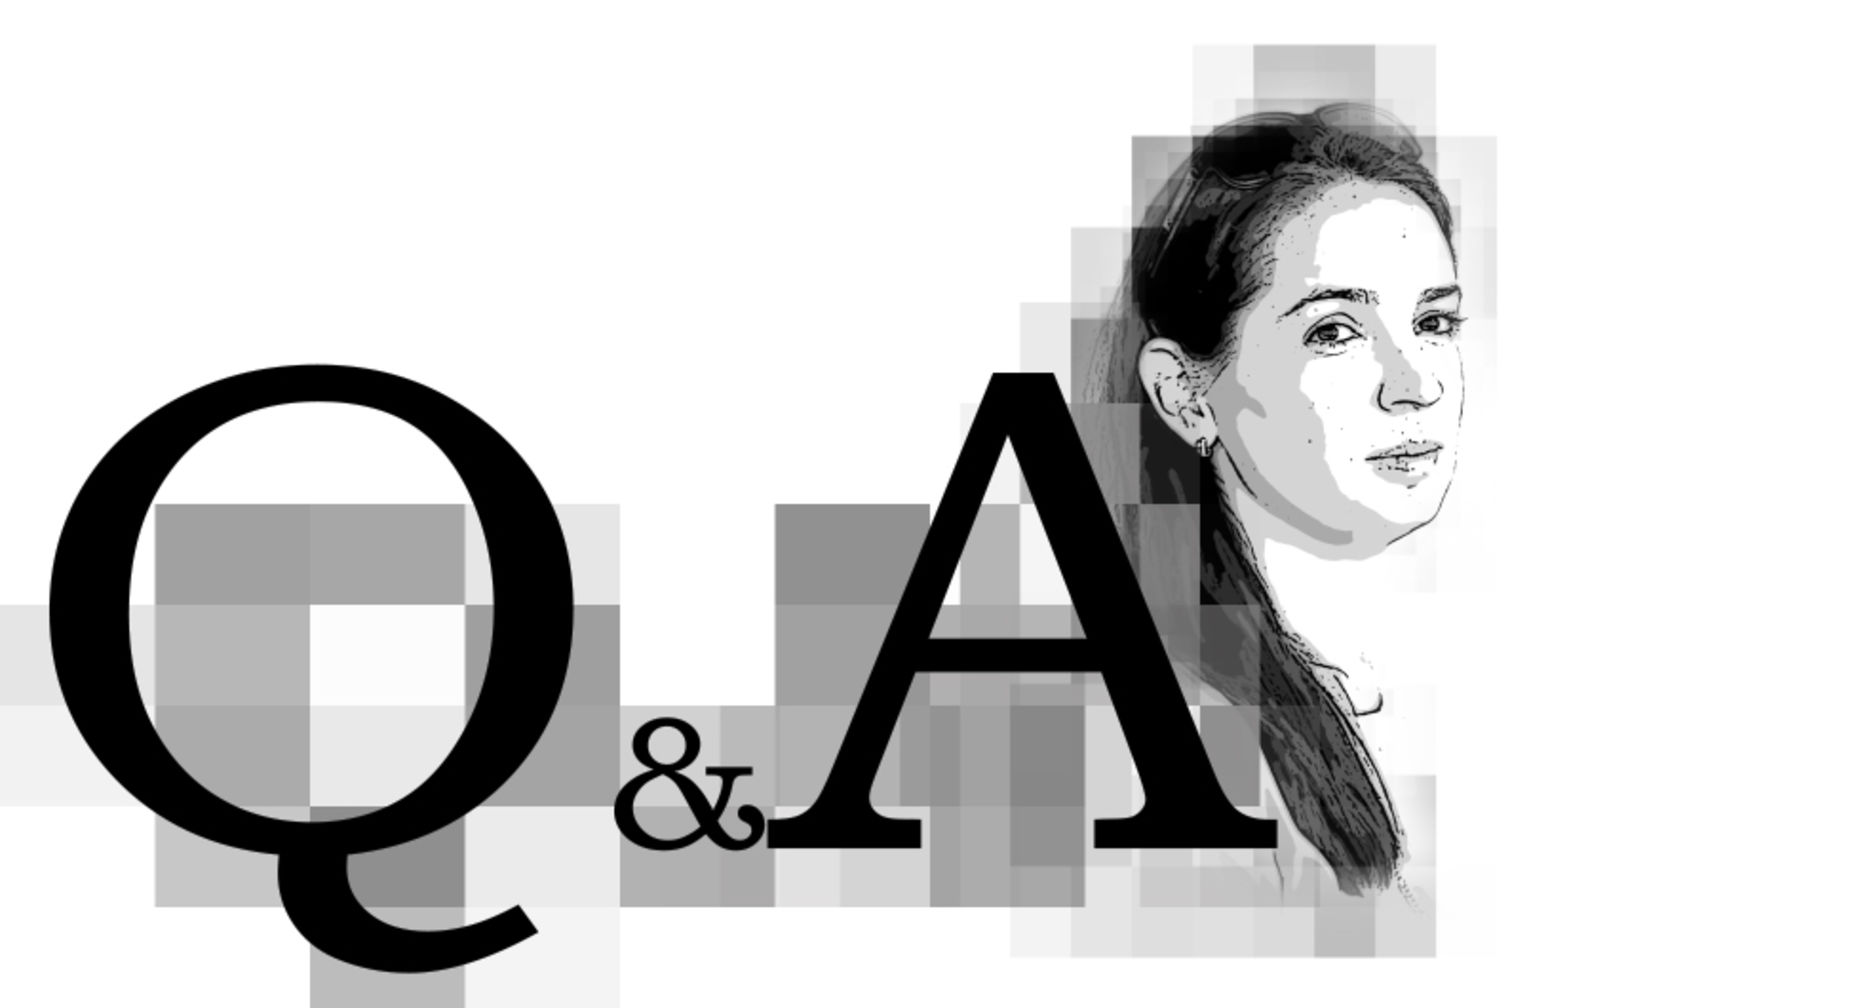 Ozon Holdings CEO Maelle Gavet. Illustration by Matthew Vascellaro.